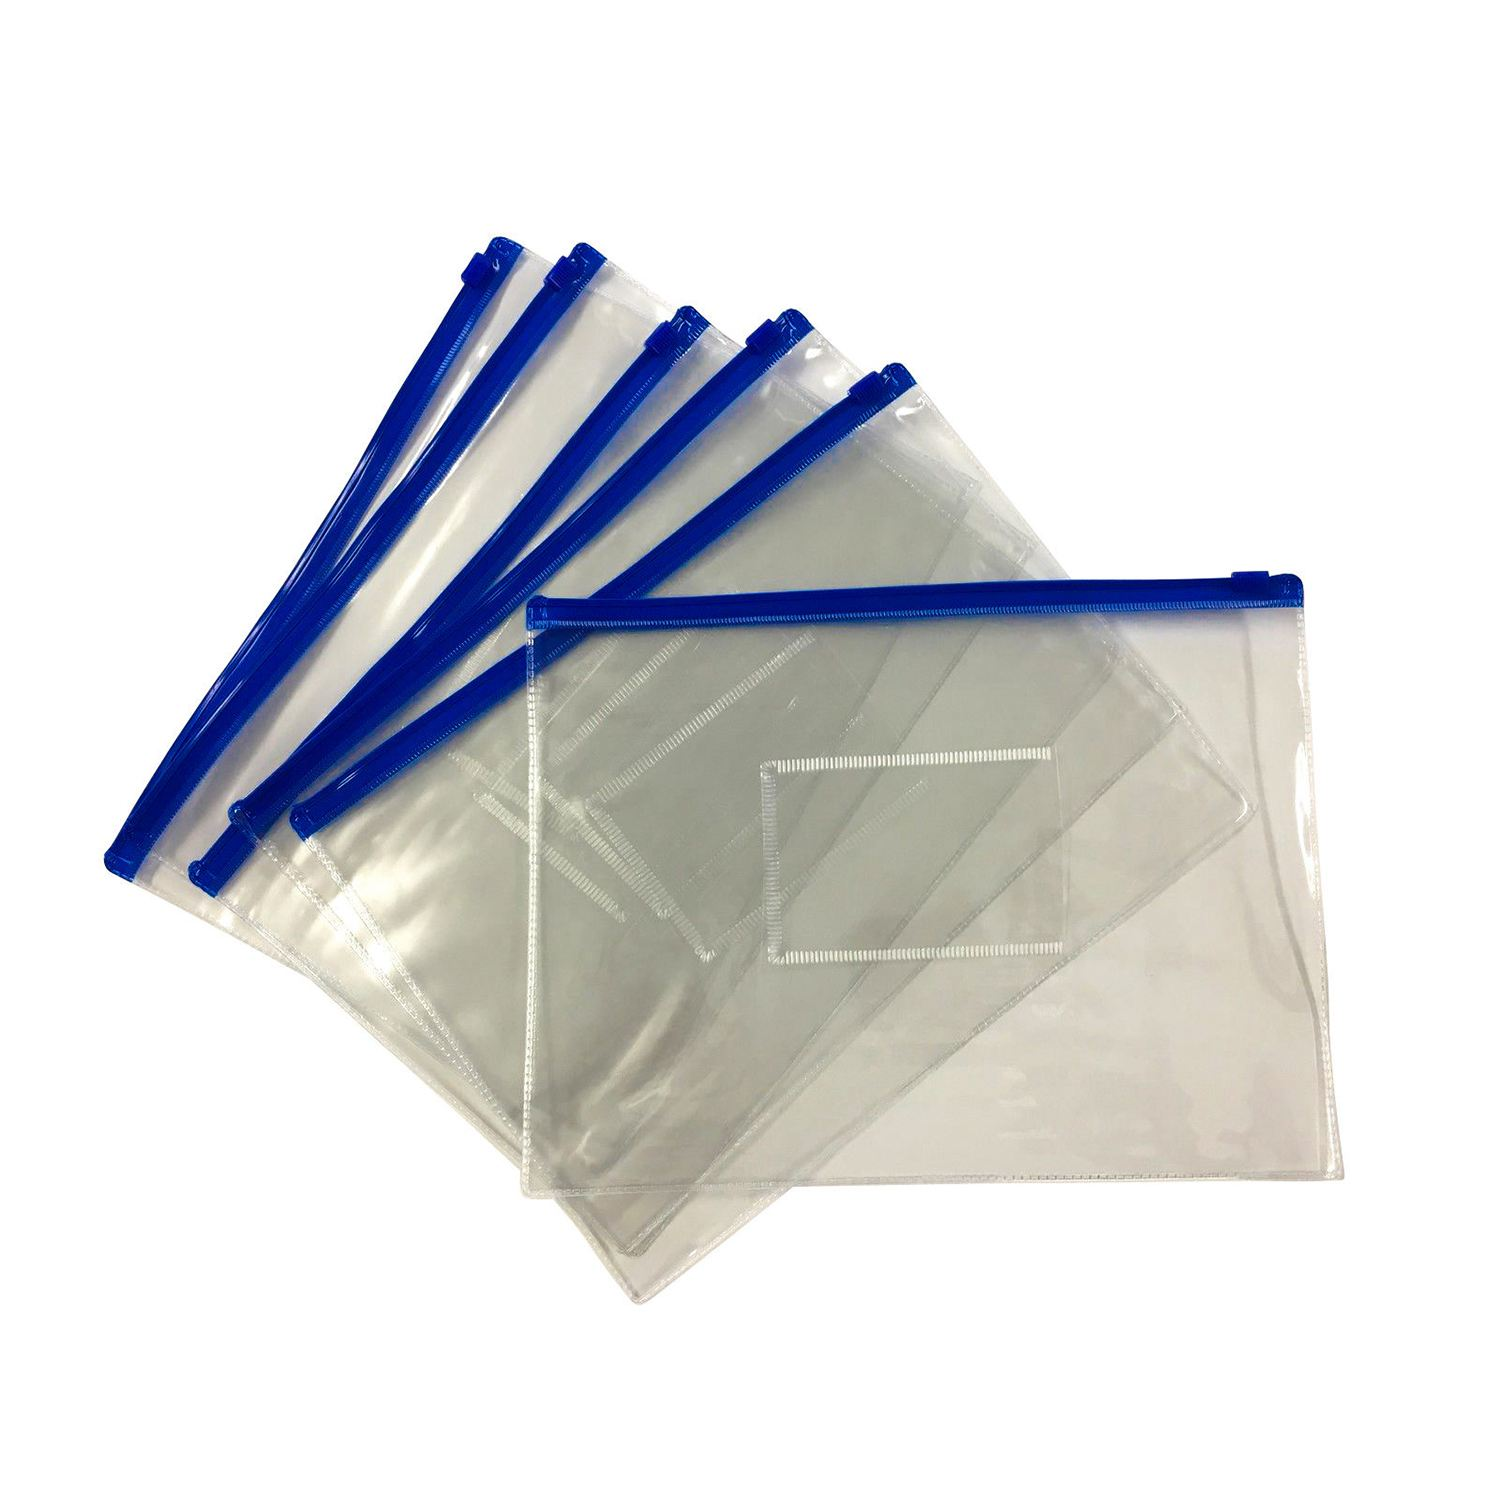 12 X A5 Blue Zip Zippy Document Bags  Clear Plastic Transparent Storage